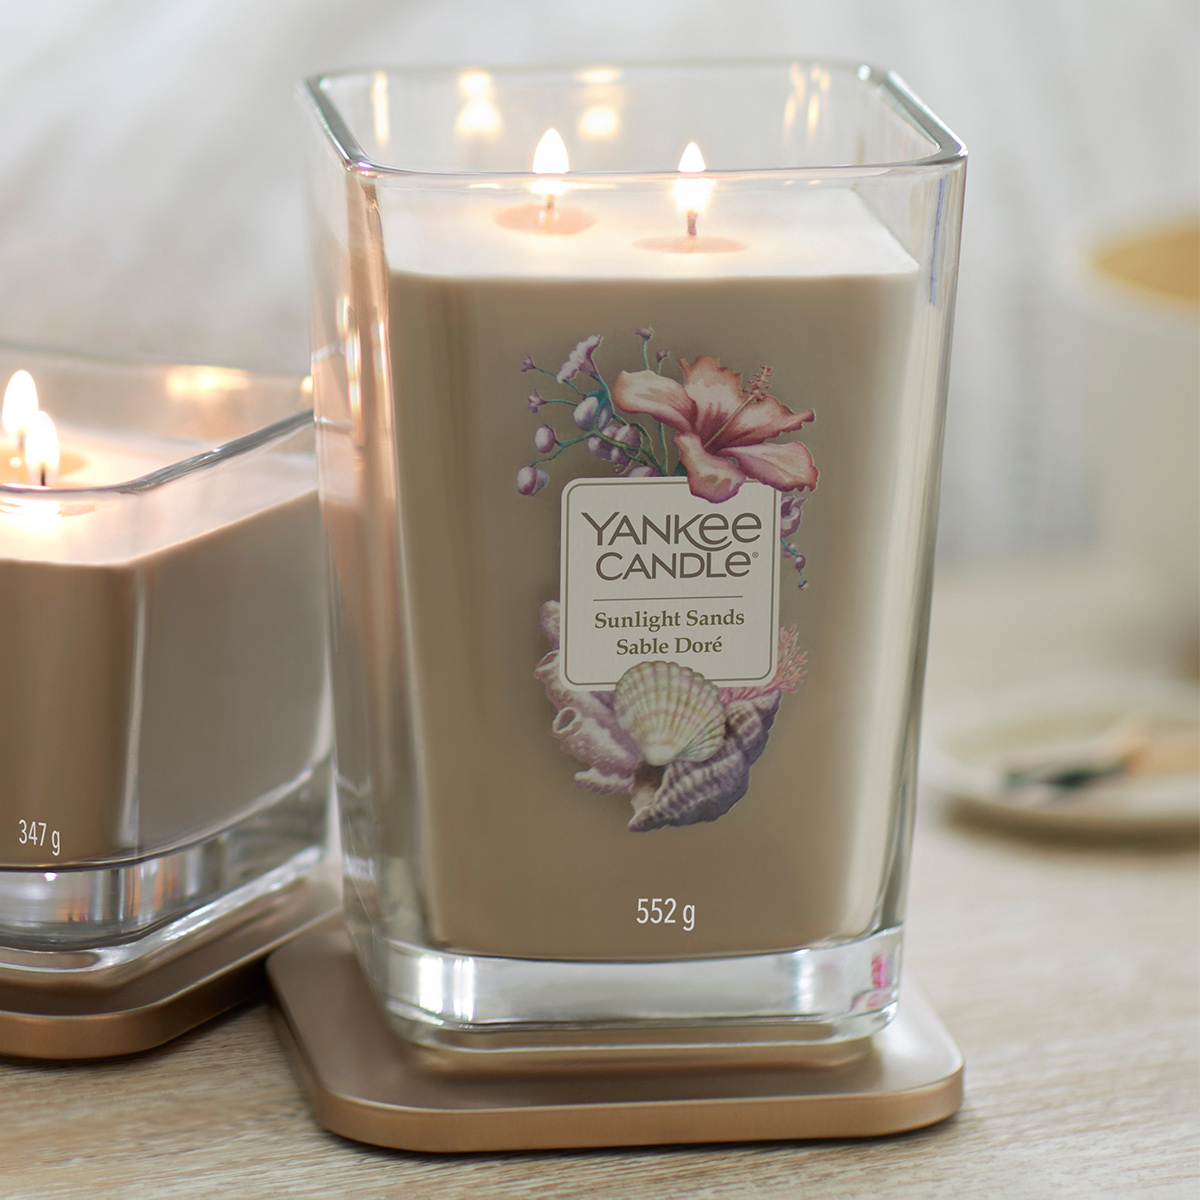 Elevation-Sunlight-Sands-Large-Square-Candle-15491067E-Display